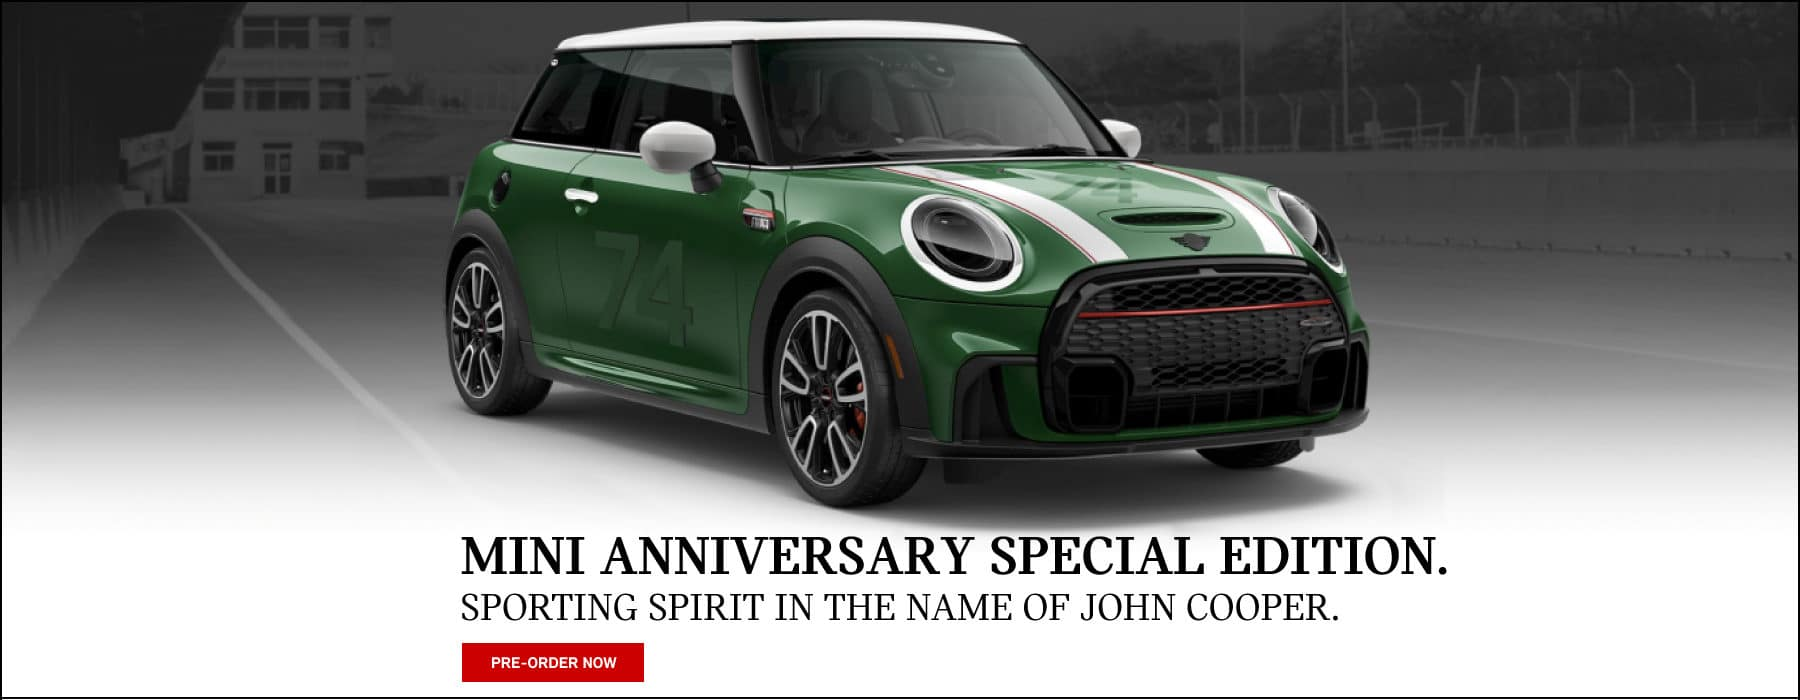 MINI Anniversary Special Edition. Pre-oder yours today!